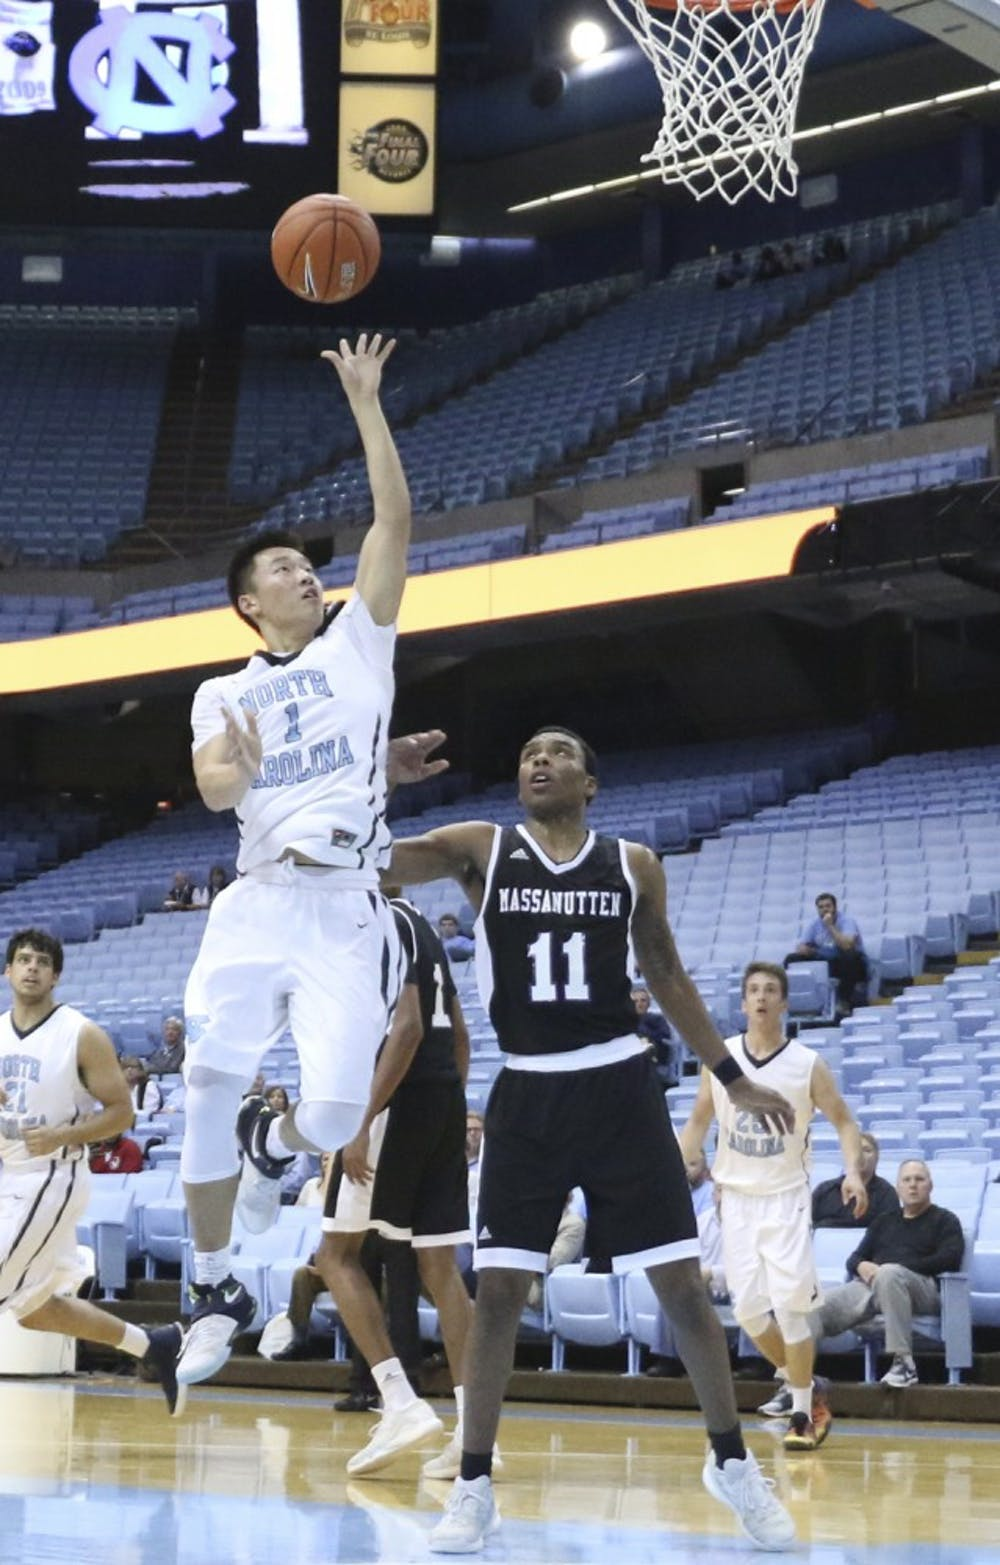 UNC JV basketball honors Dean Smith in 97-80 loss to Hargrave Military Academy